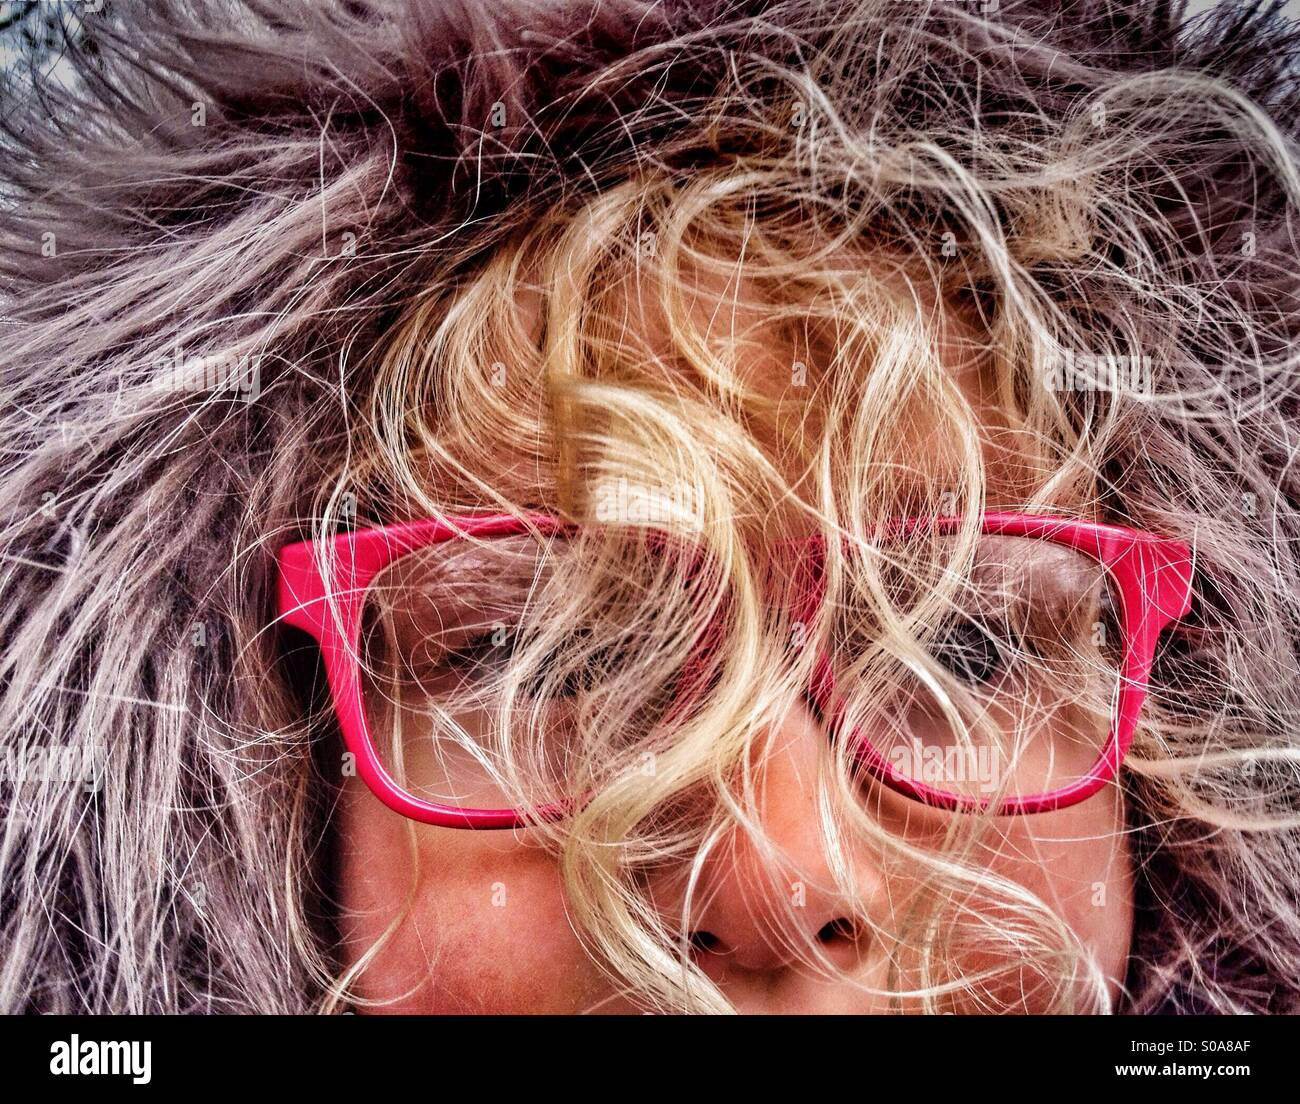 Young Girl wearing furry hood with face obscured by curly blind hair - Stock Image